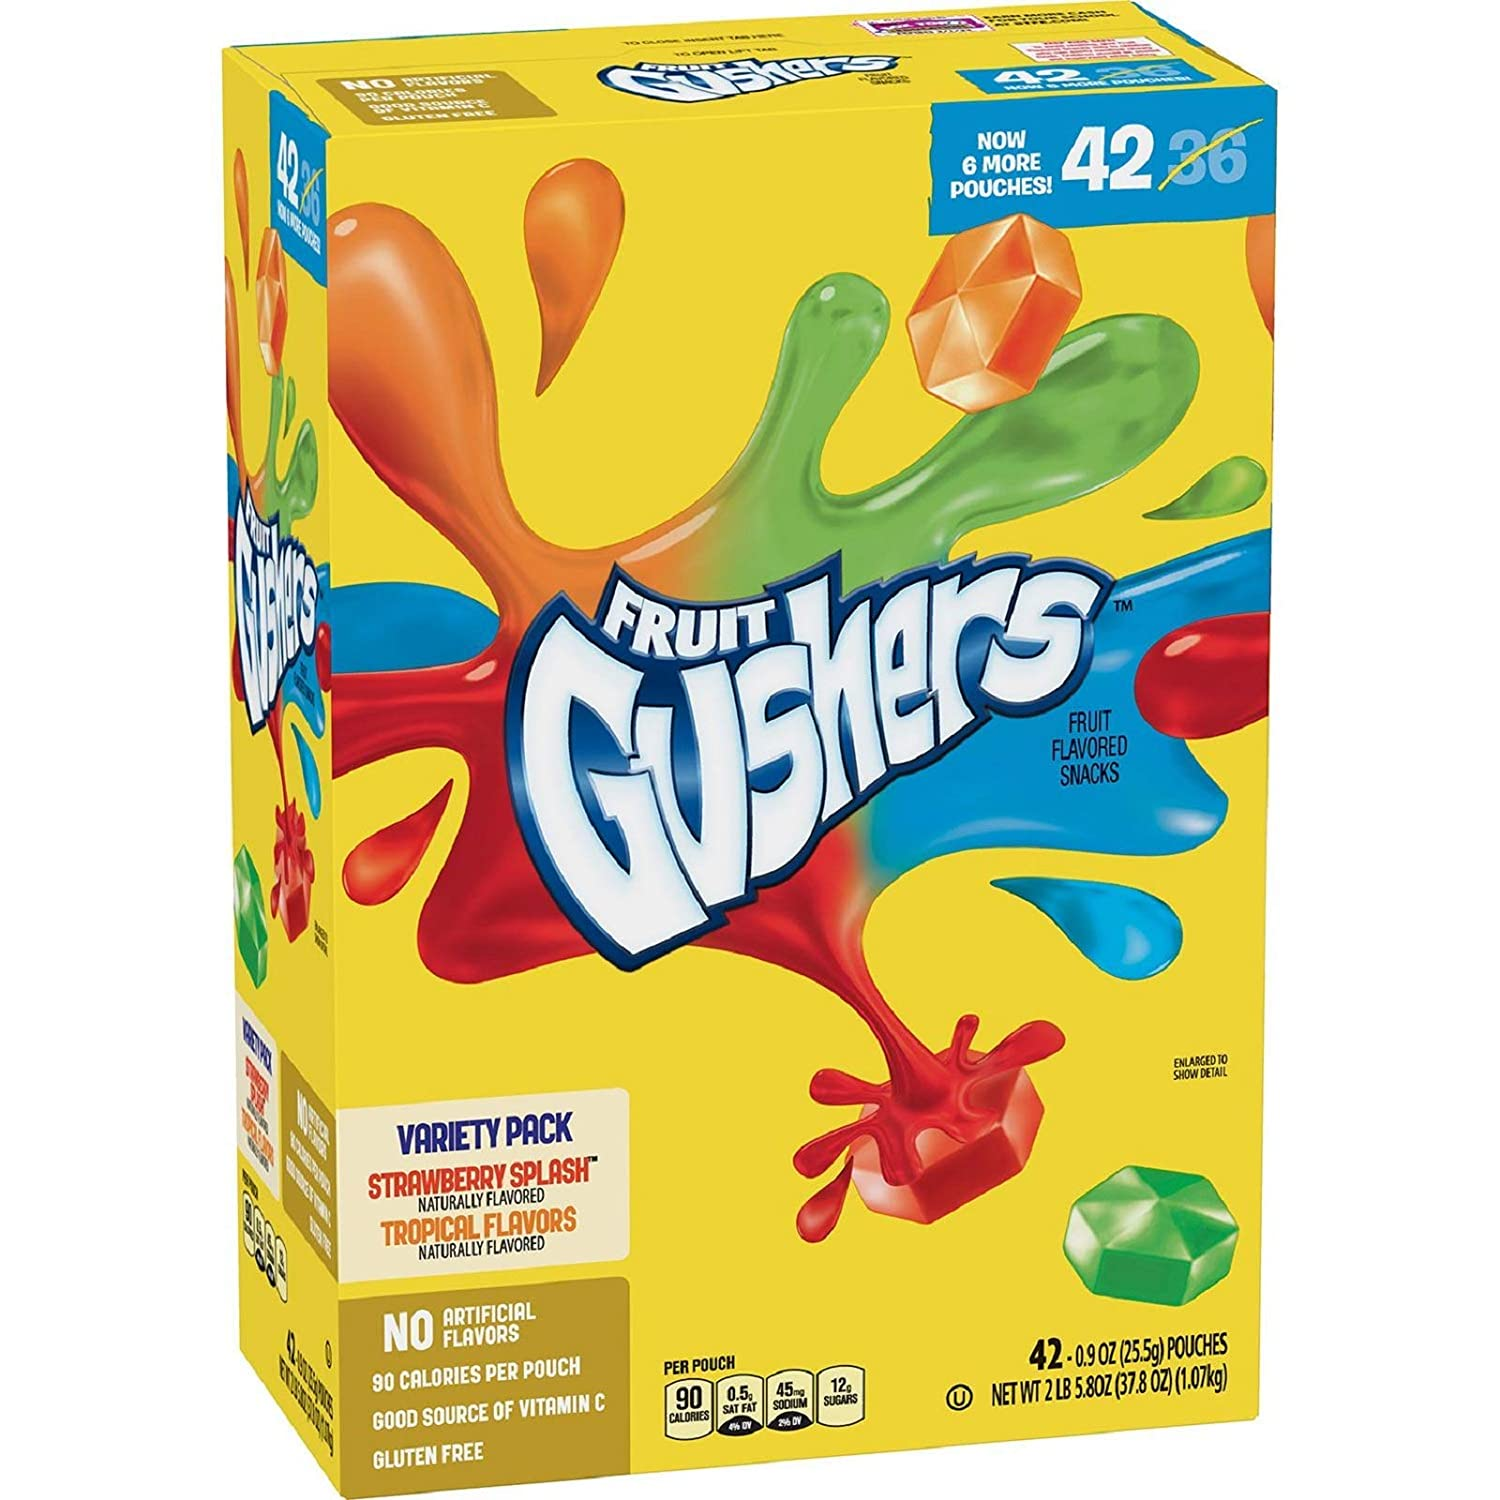 Fruit Fruit Fruit Gushers Variety Pack, Strawberry Splash & Tropical (42 ct.) A1